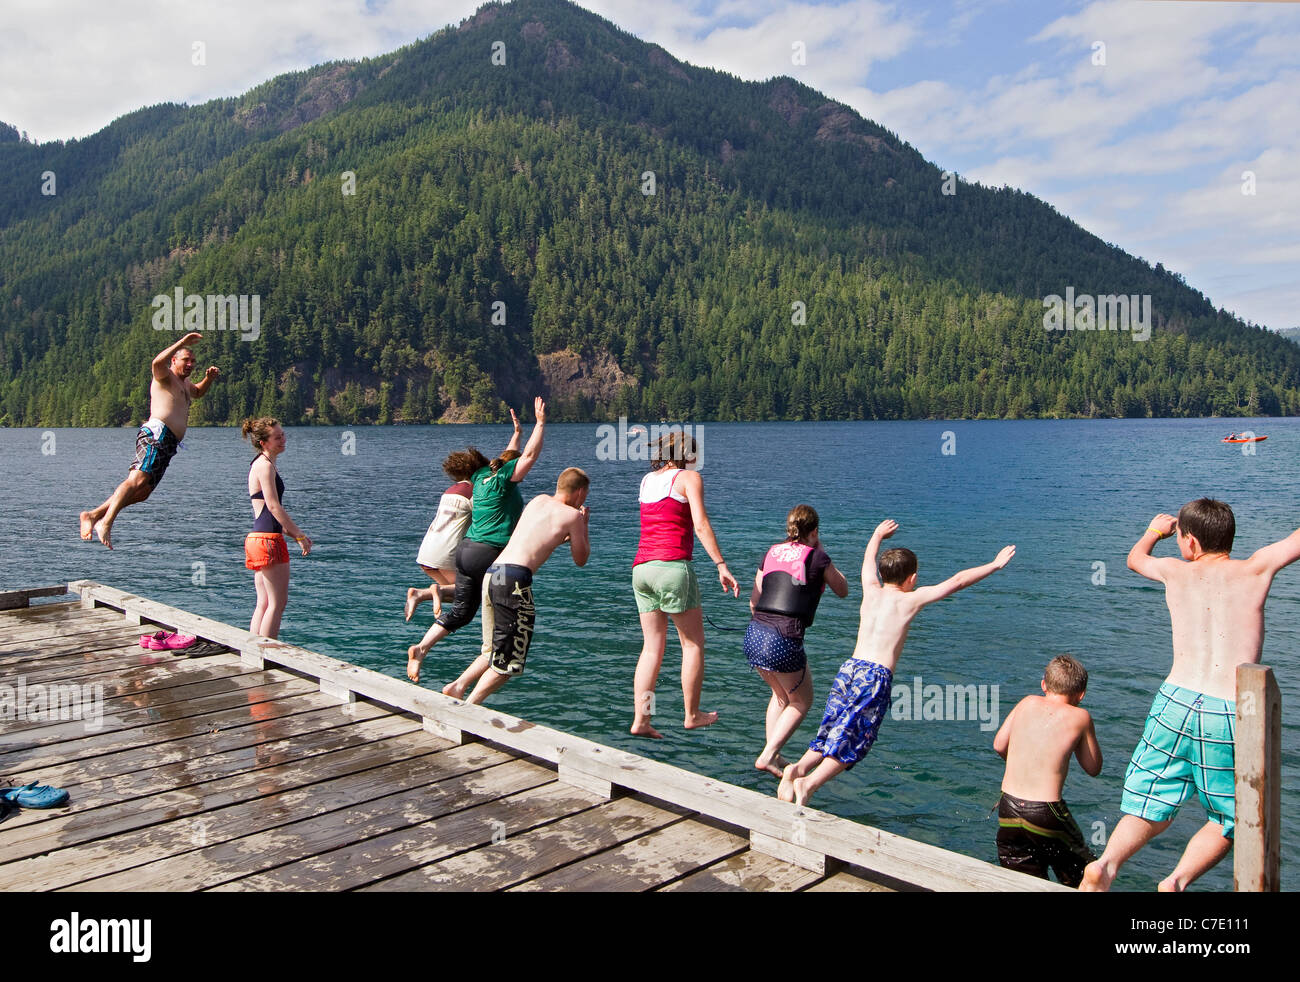 Family leaps into lake from dock, summertime lake fun - Stock Image